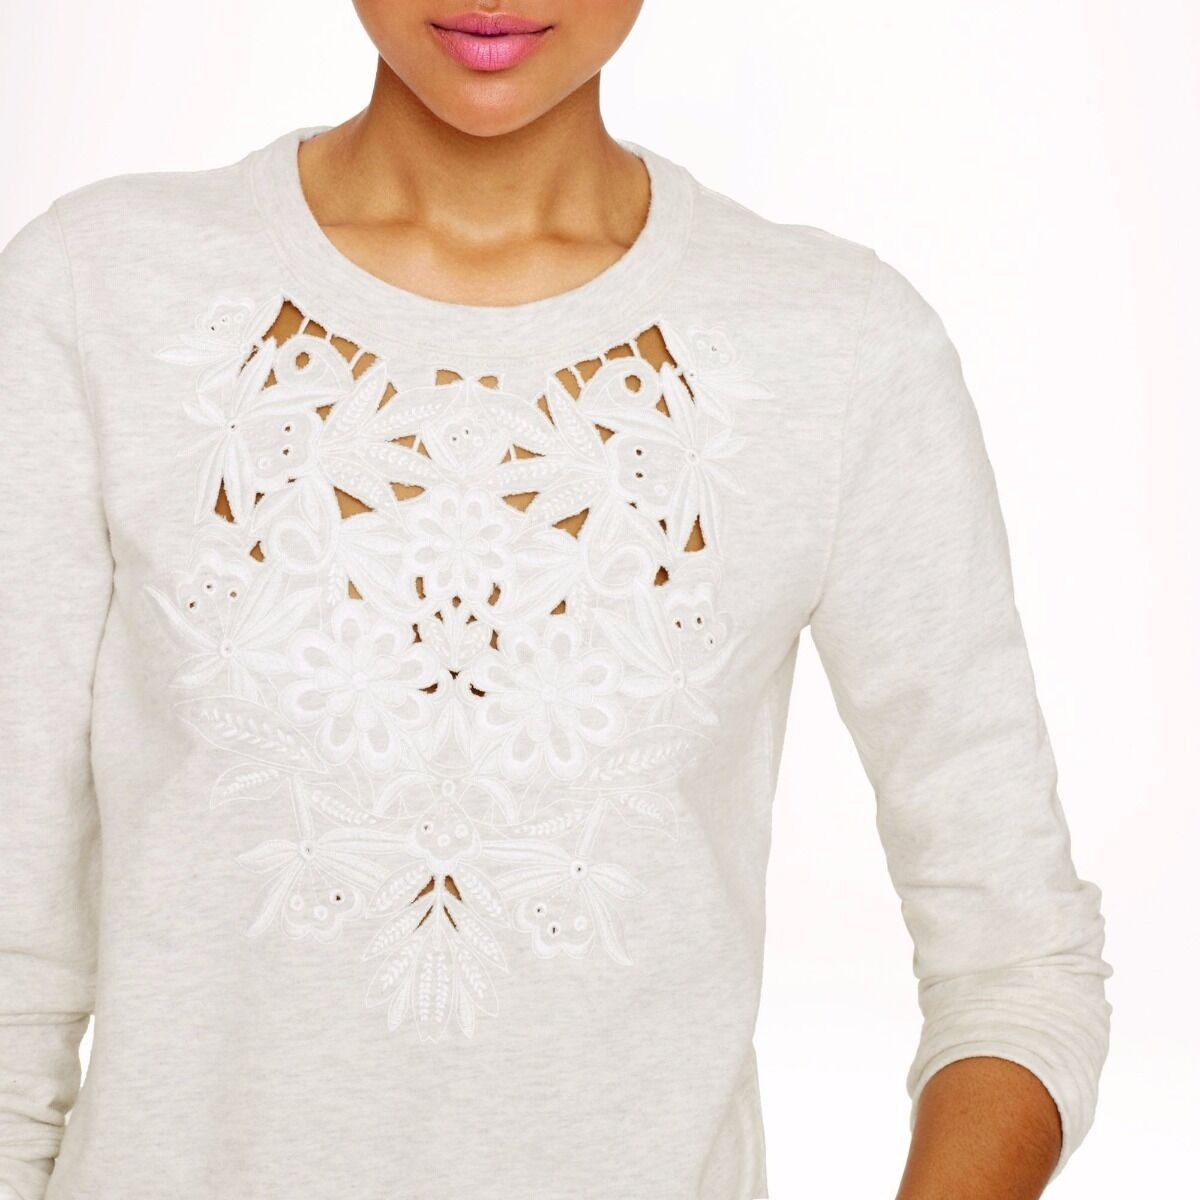 J.Crew Cutout floral sweatshirt S Small Grey Sweater Top Casual Sport Gym